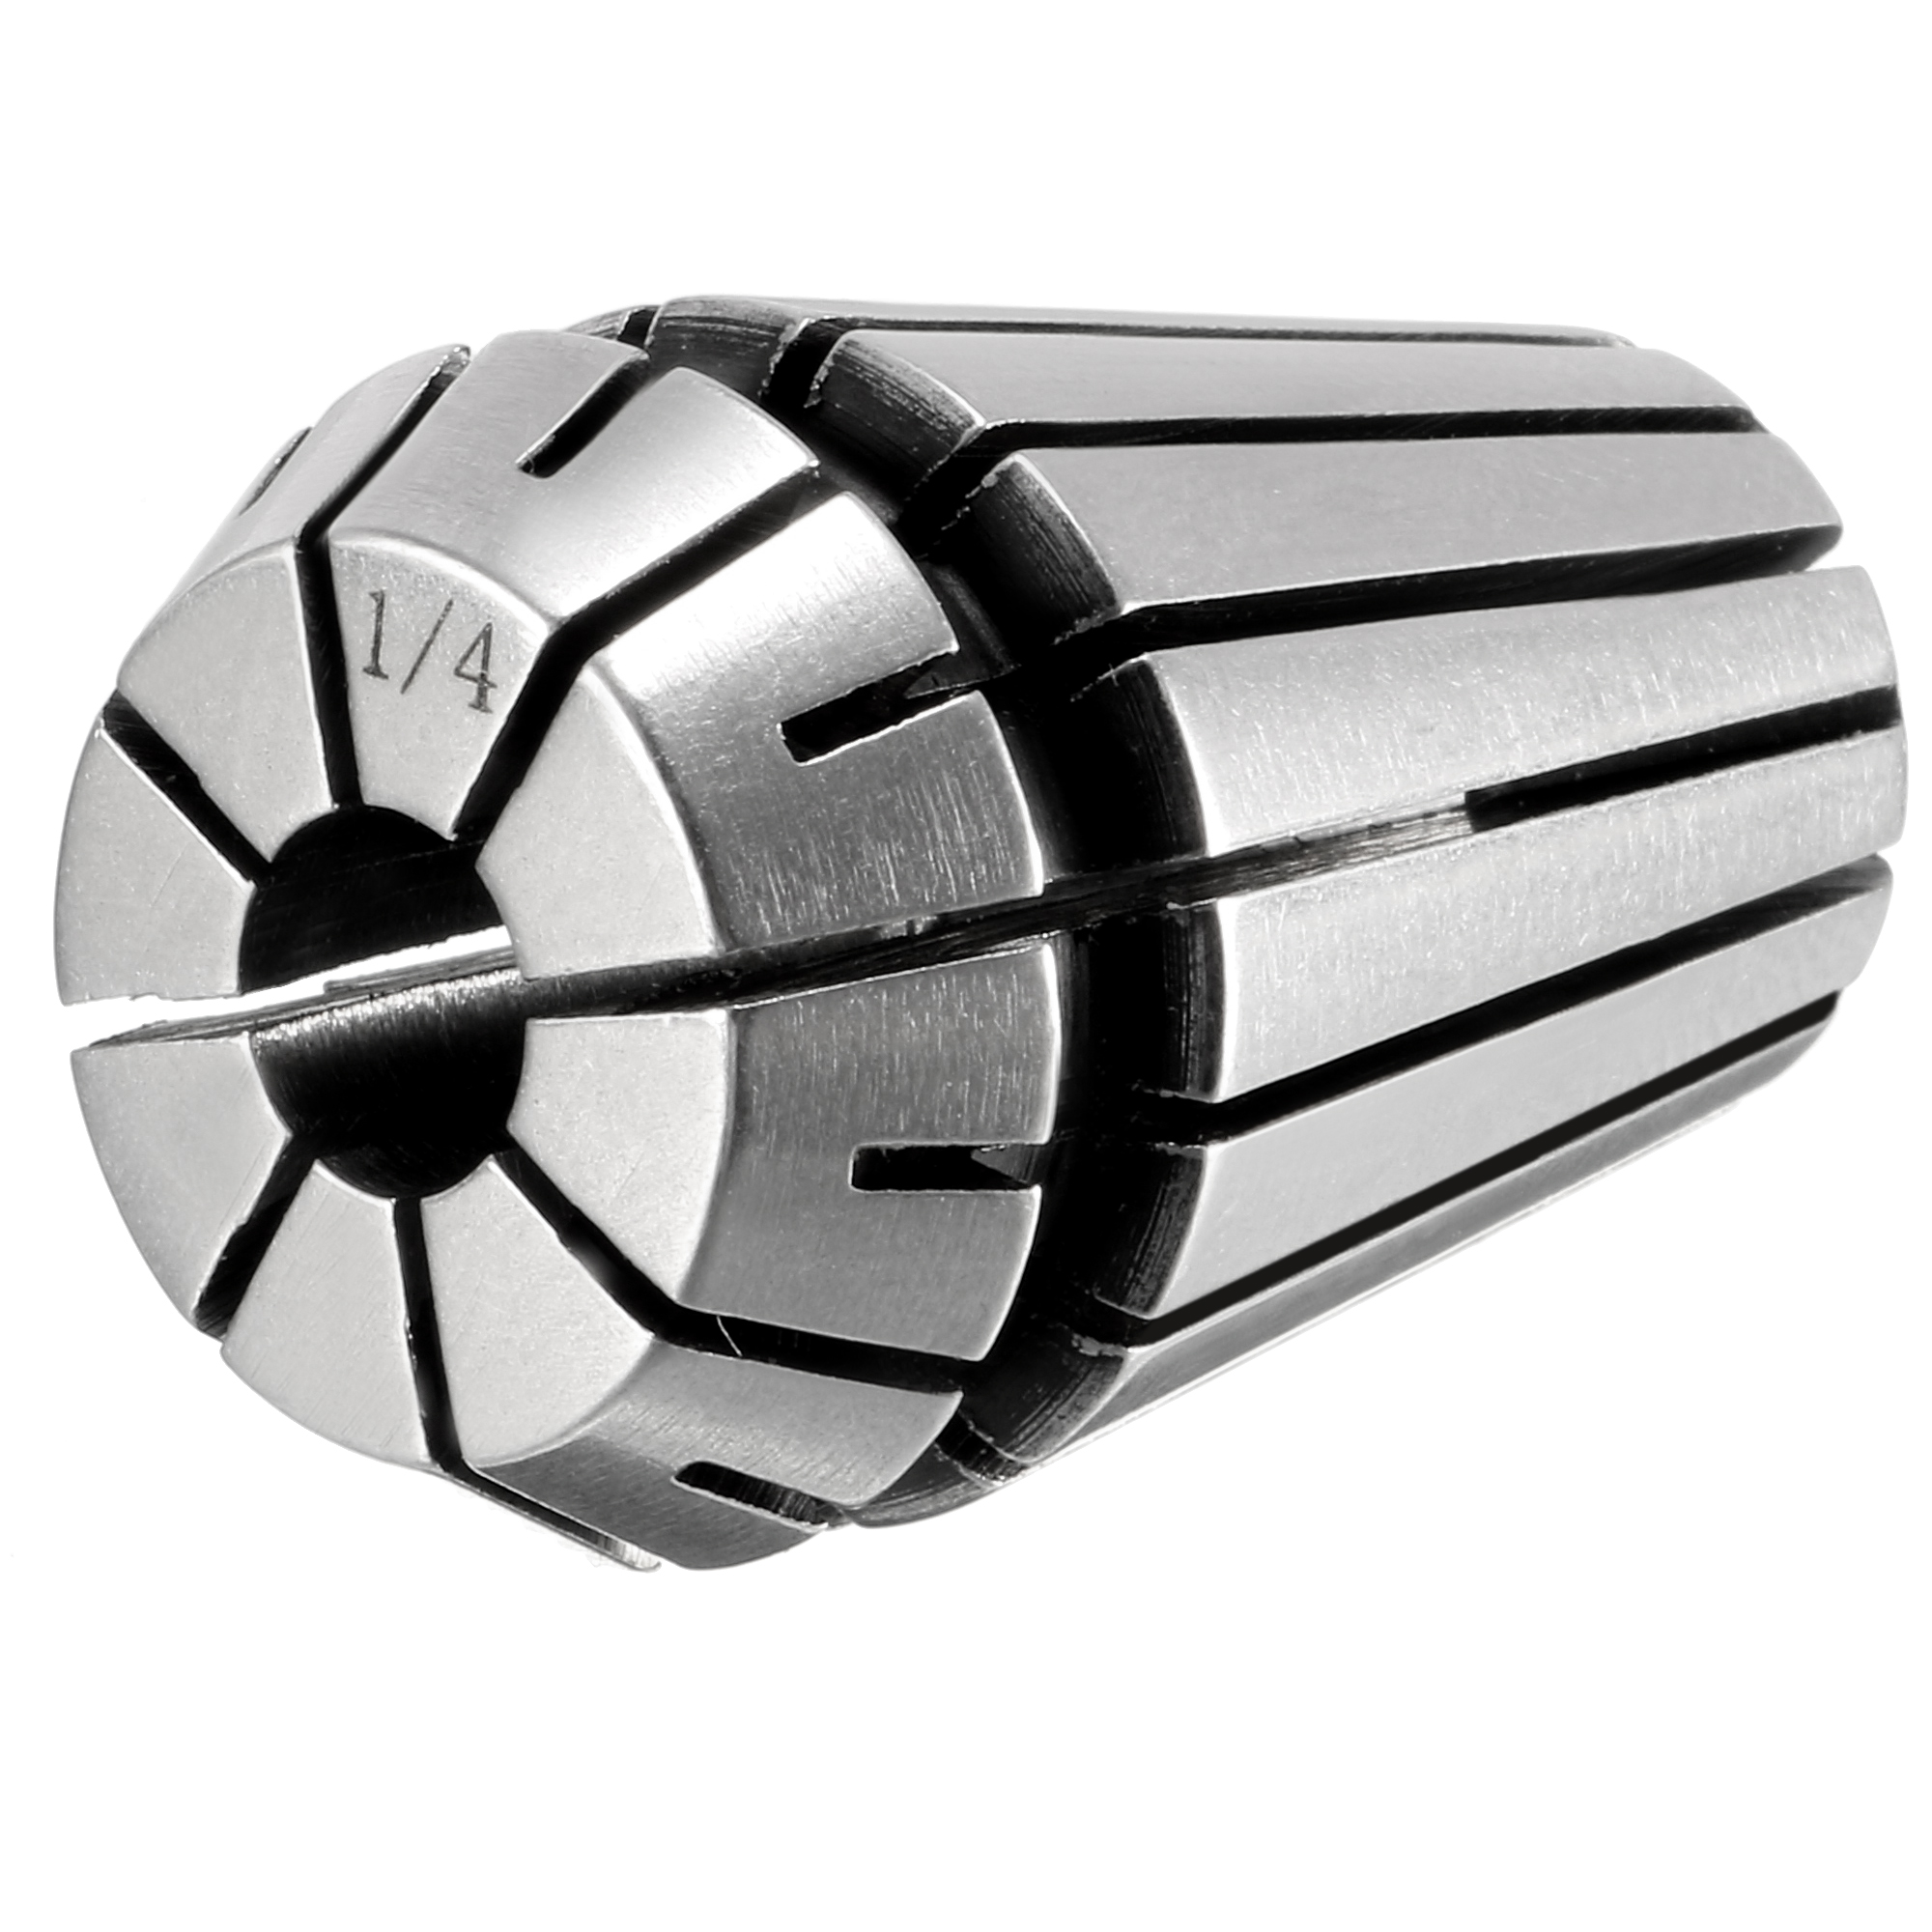 """ER-20 1/4"""" Spring Collet Chuck for CNC Engraving Machine Lathe Milling Tool"""